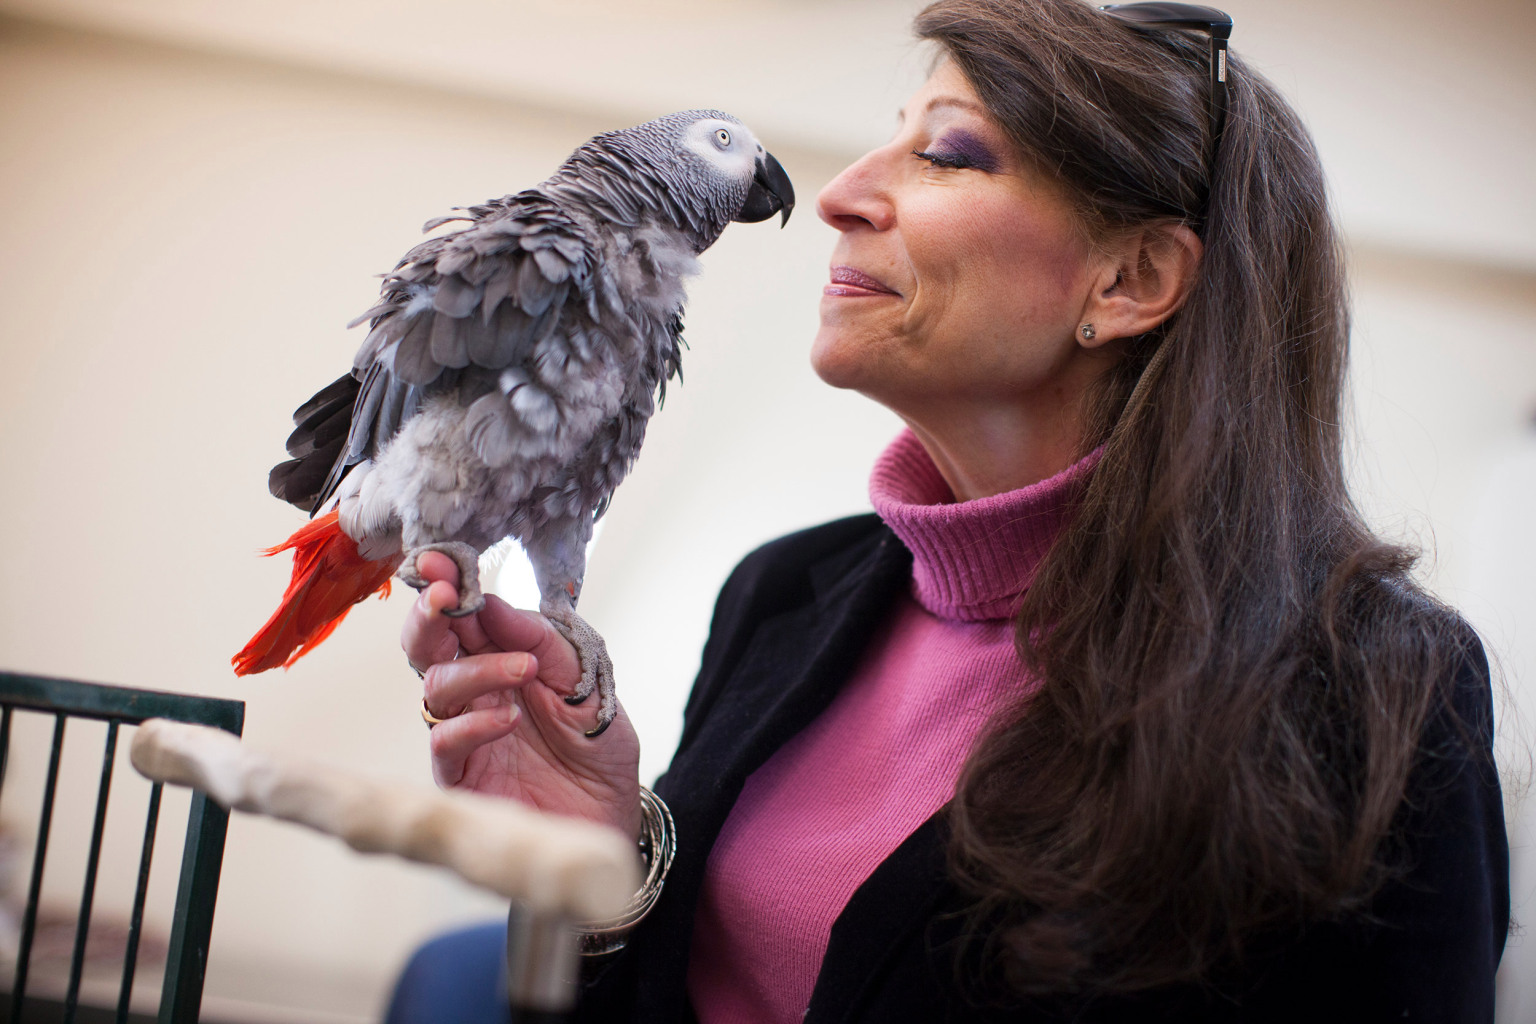 Griffin the parrot with psychologist Irene Pepperberg.